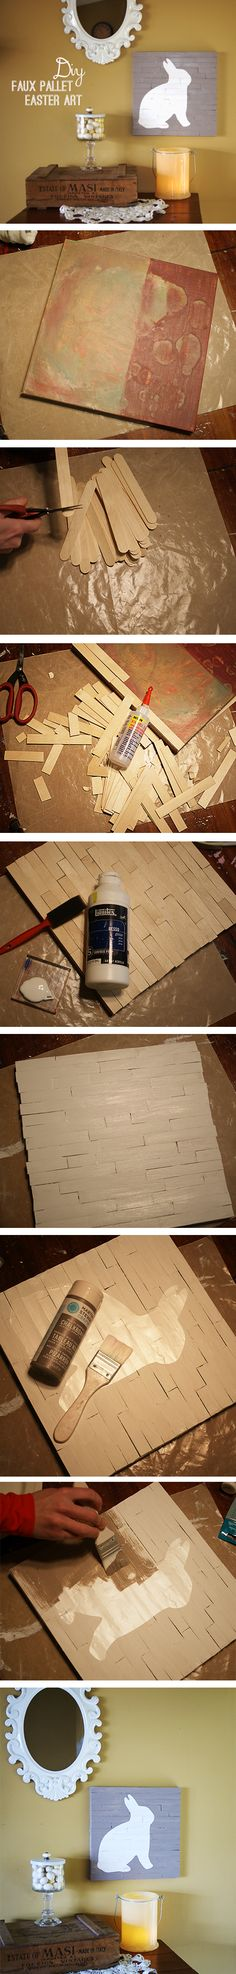 Make Faux Wood Pallet Art #Easter @Johnnie (Saved By Love Creations) Lanier